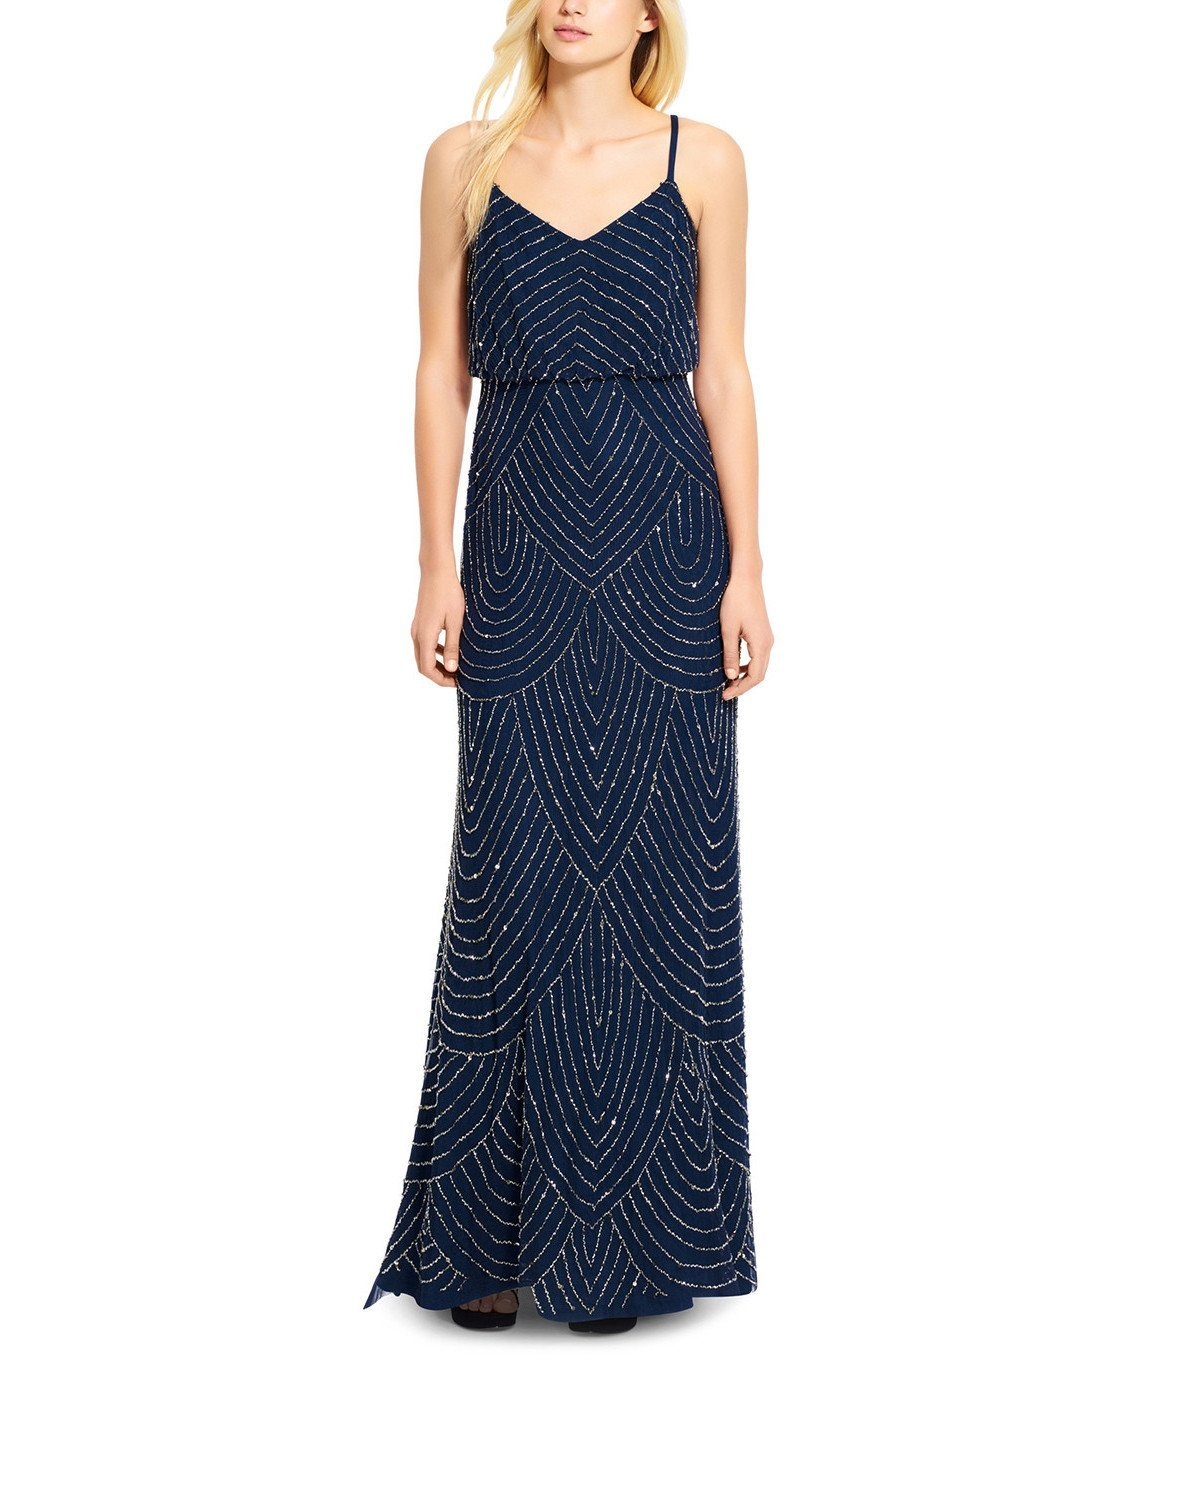 Adrianna Papell Art Deco Beaded Blouson Gown in Navy